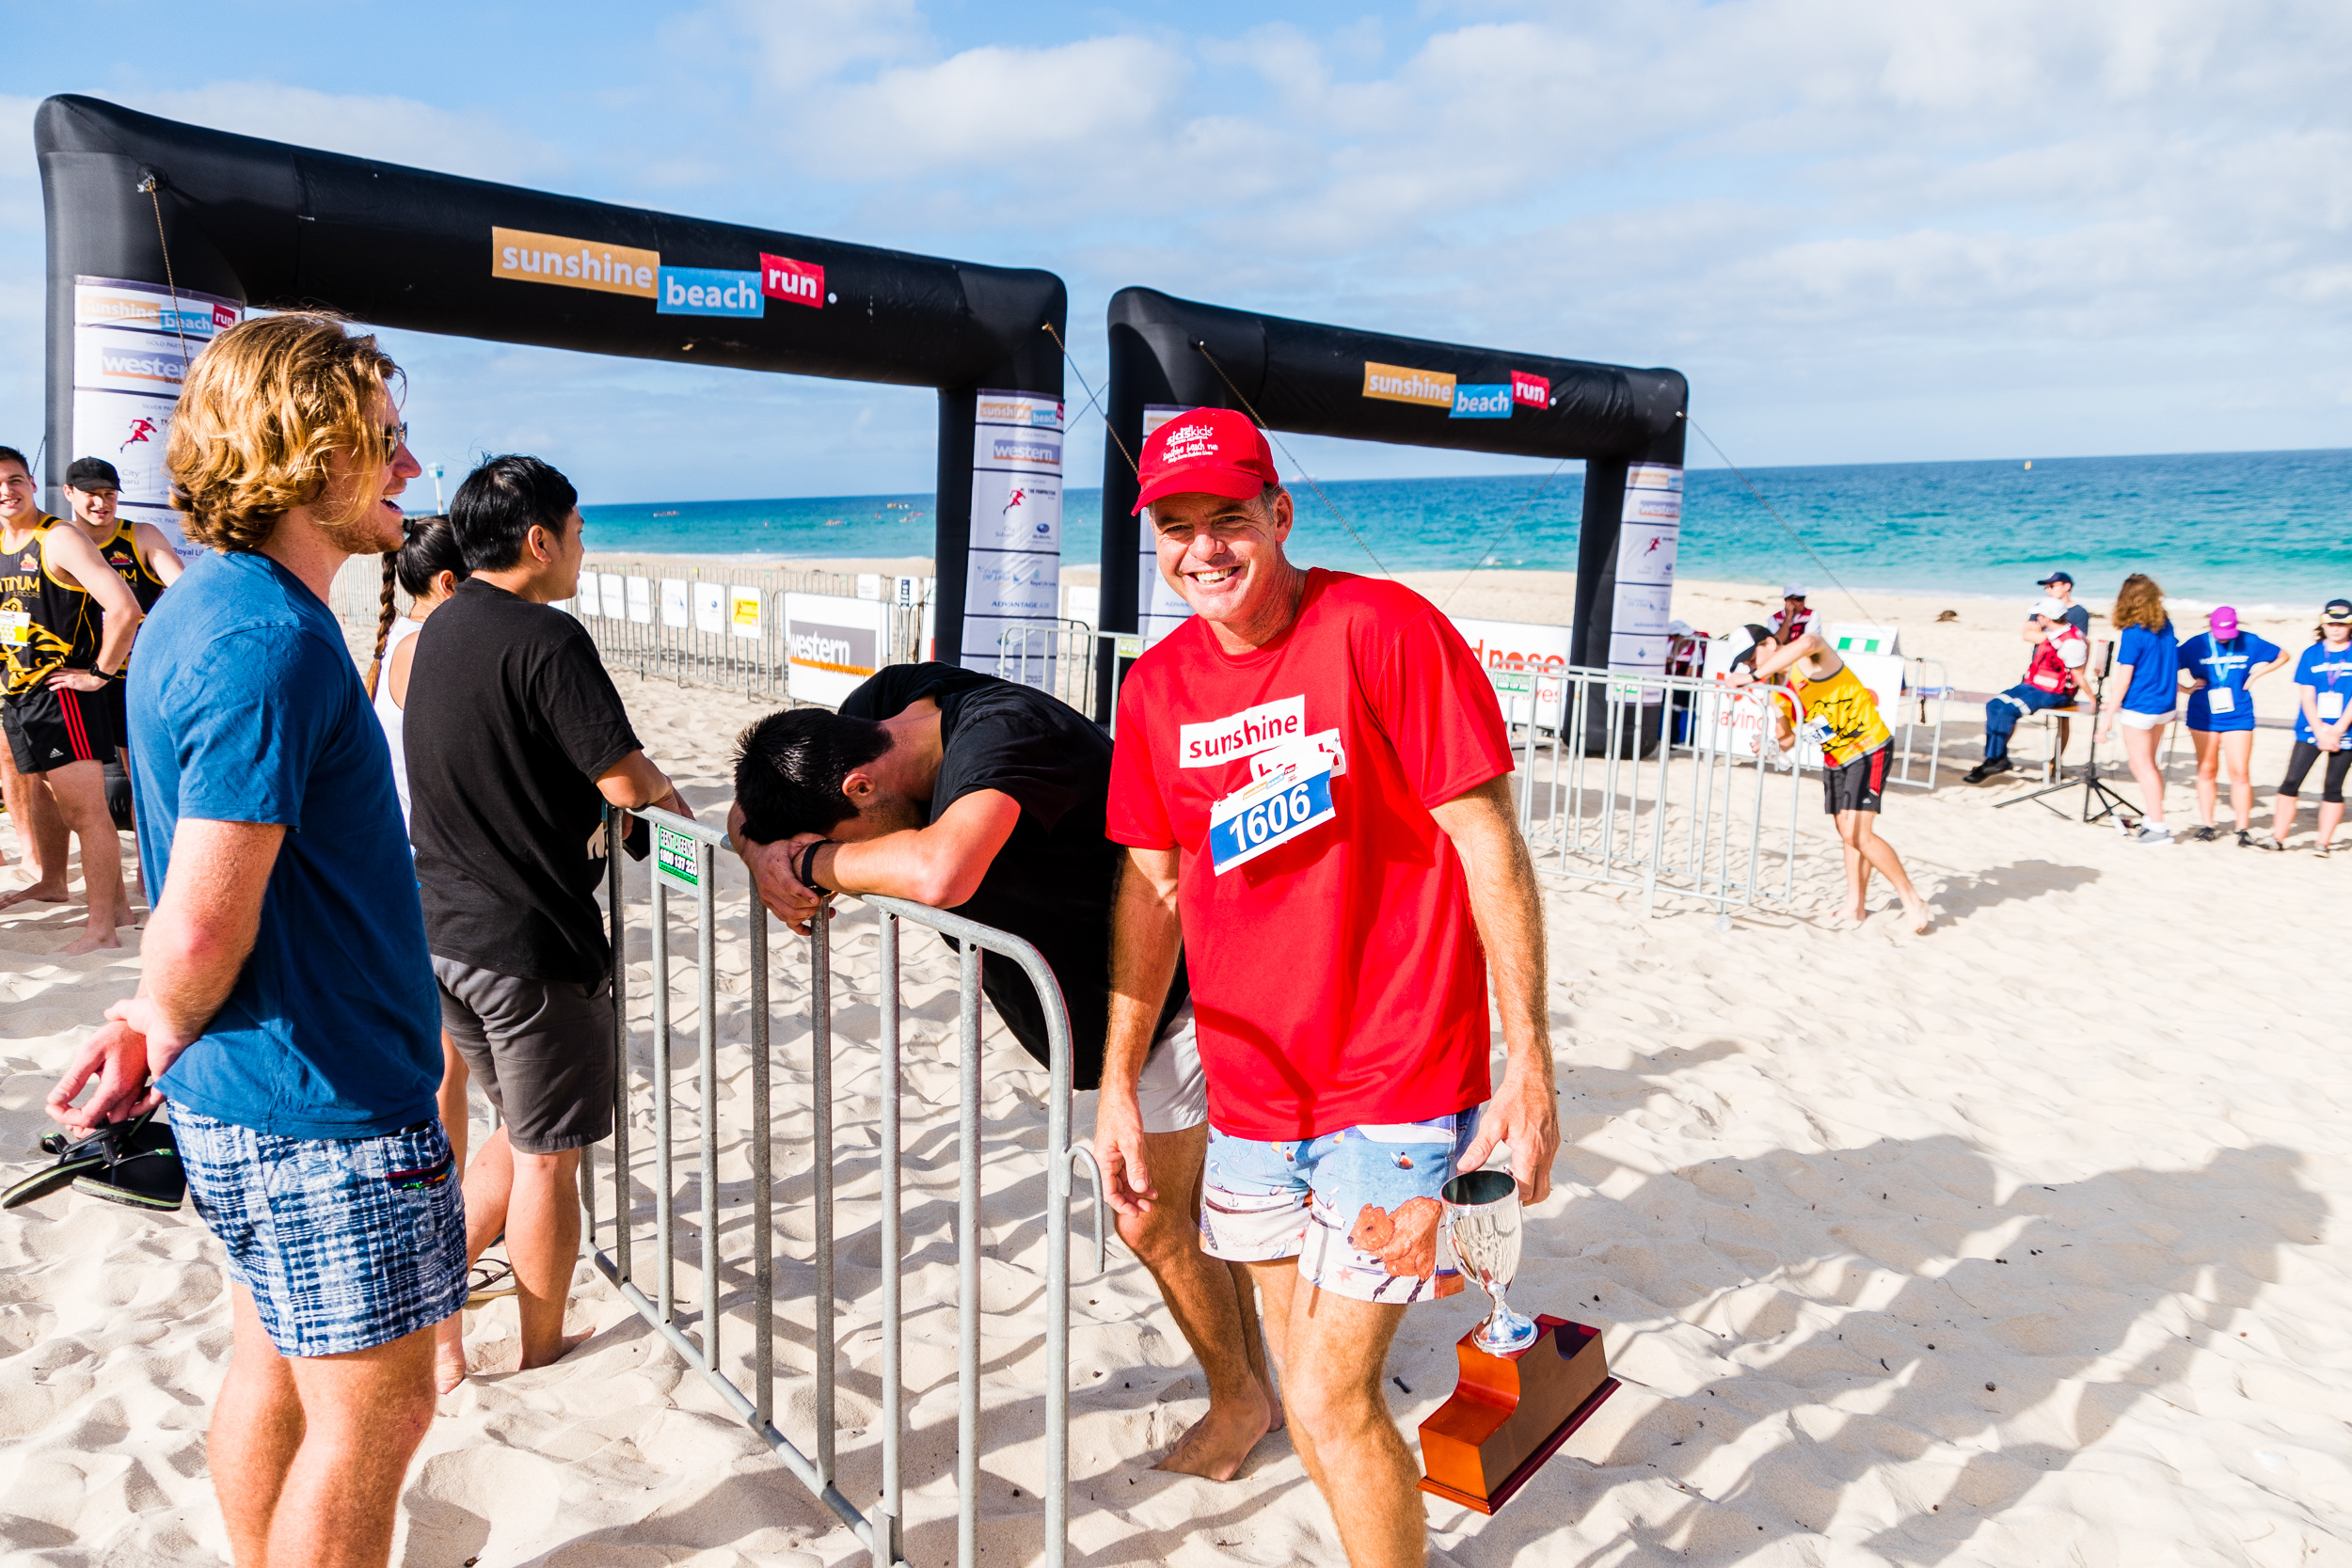 Spyrides_Kyle_Sunshine_Beach_Run_18.2.2018_DSC9196.jpg